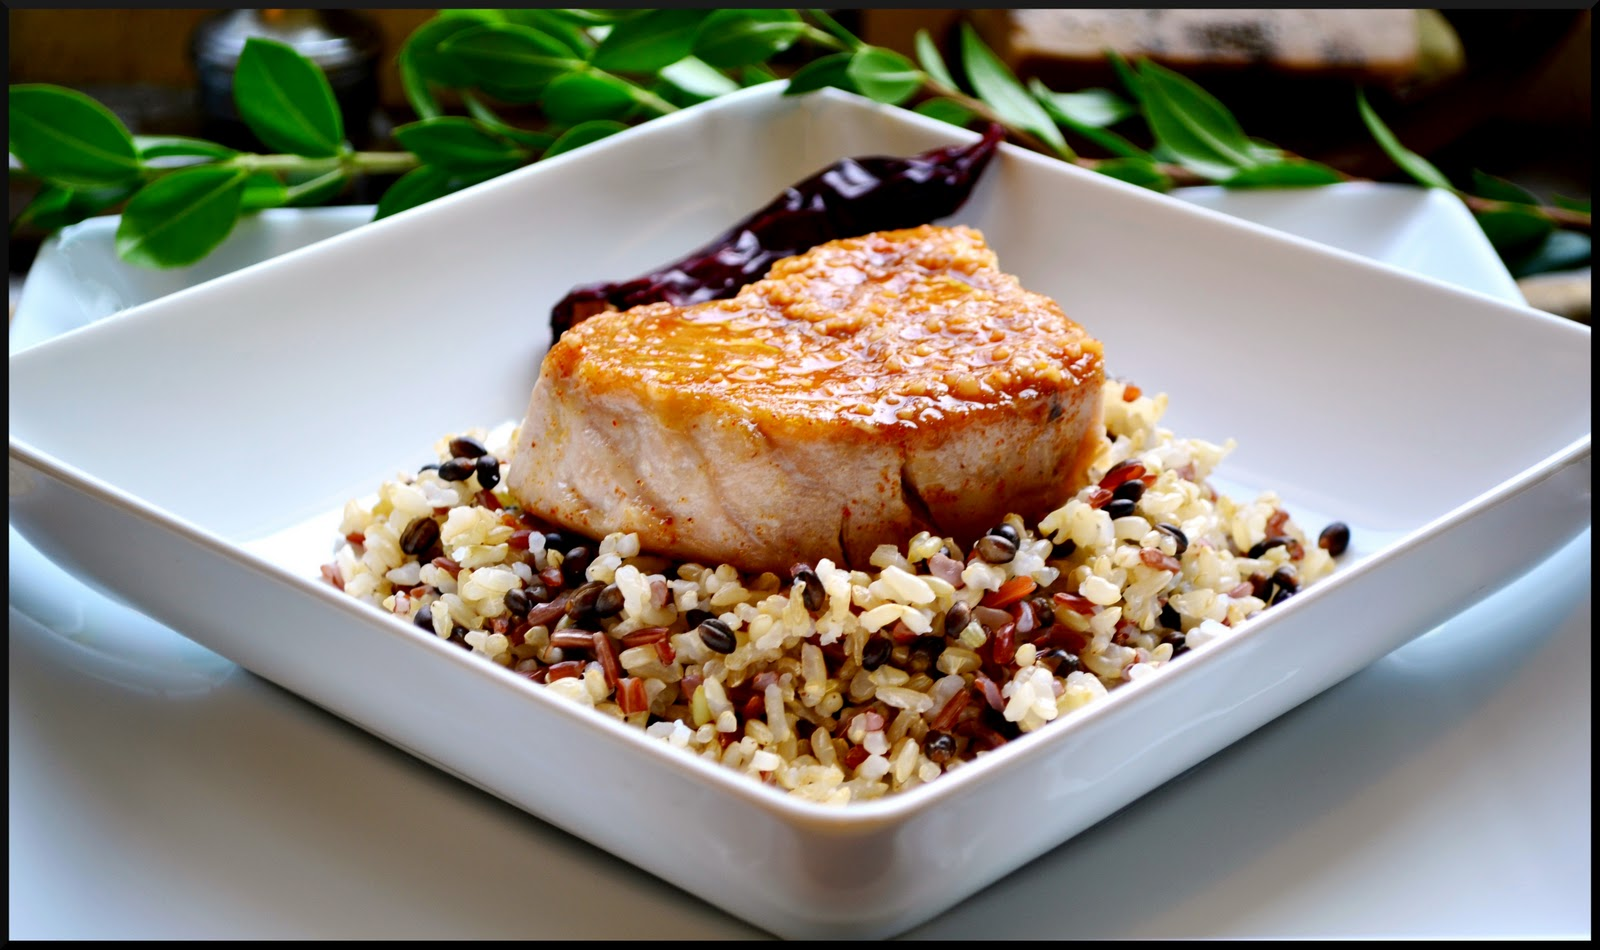 The ardent epicure what 39 s for dinner moonfish in chili for Opah fish recipes